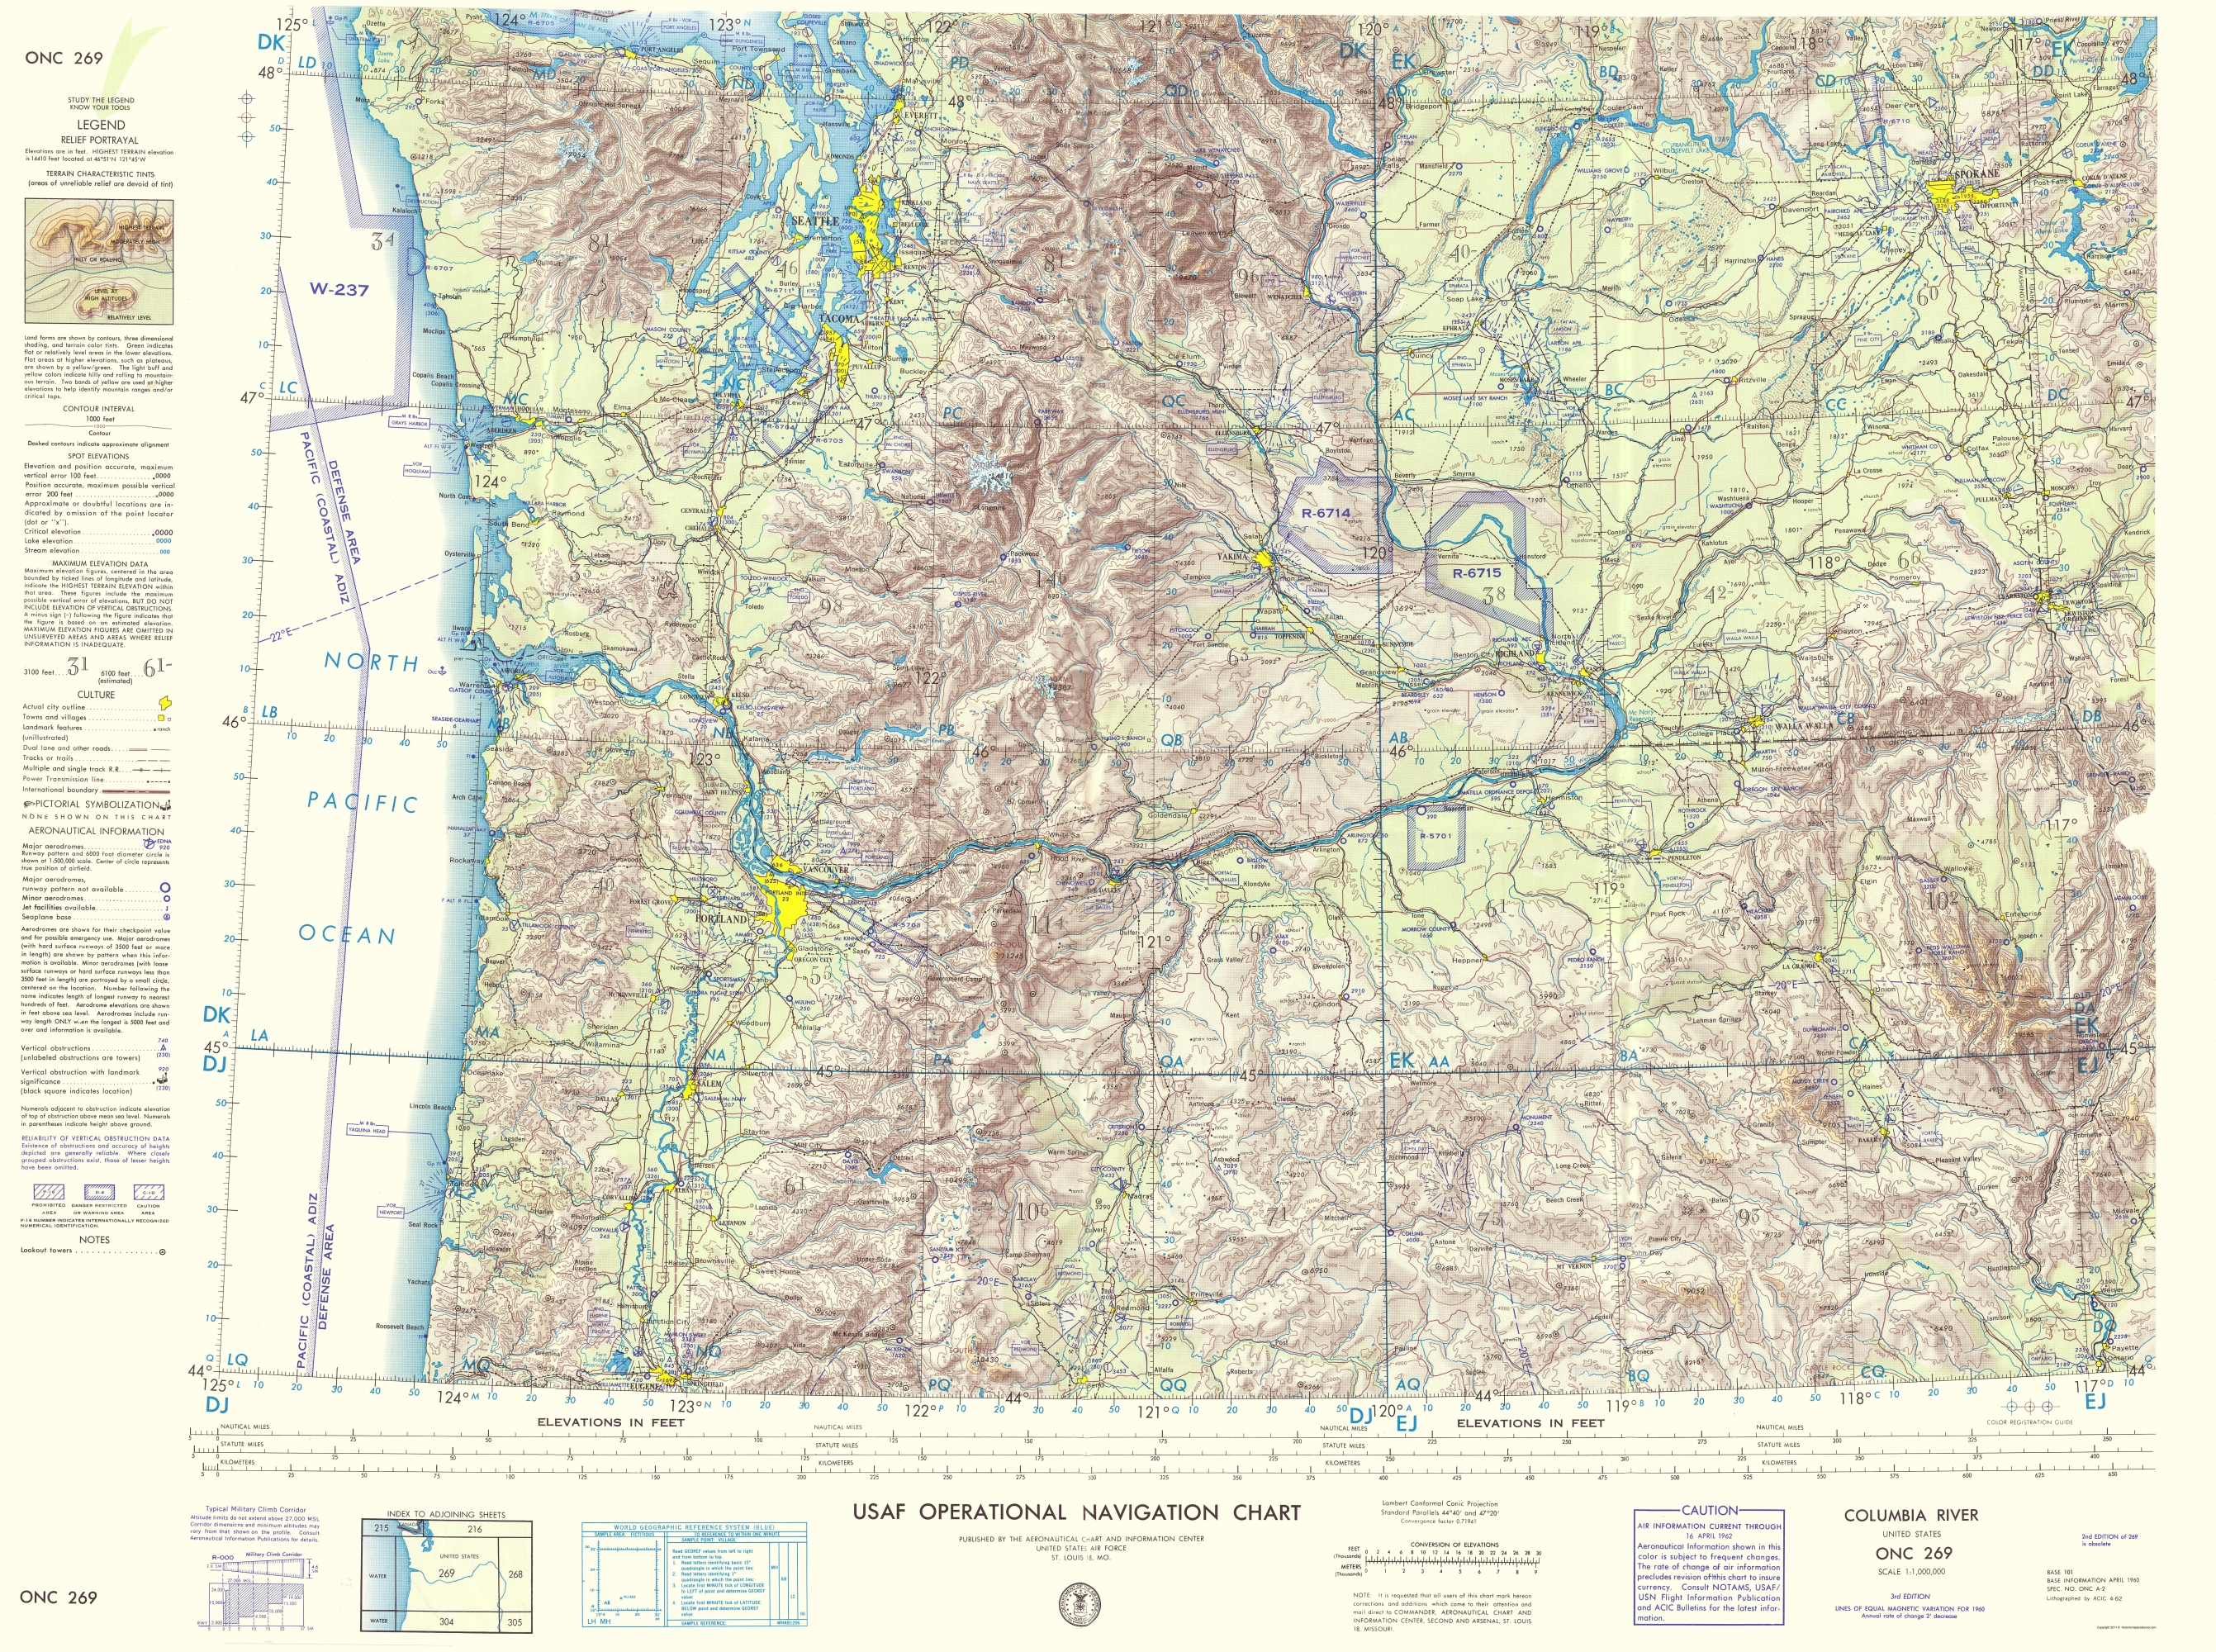 Topographical Map - Columbia River Idaho, Oregon, Washington 1962 - on topological map of alabama, detailed map of alabama, poverty map of alabama, seismic map of alabama, map of mountains in alabama, demographic map of alabama, world map of alabama, contour map of alabama, latitude of alabama, political map of alabama, water of alabama, mapquest map of alabama, vegetation map of alabama, atlas map of alabama, large map of alabama, road map of alabama, hiking map of alabama, topo of alabama, geologic map of alabama, tourist map of alabama,